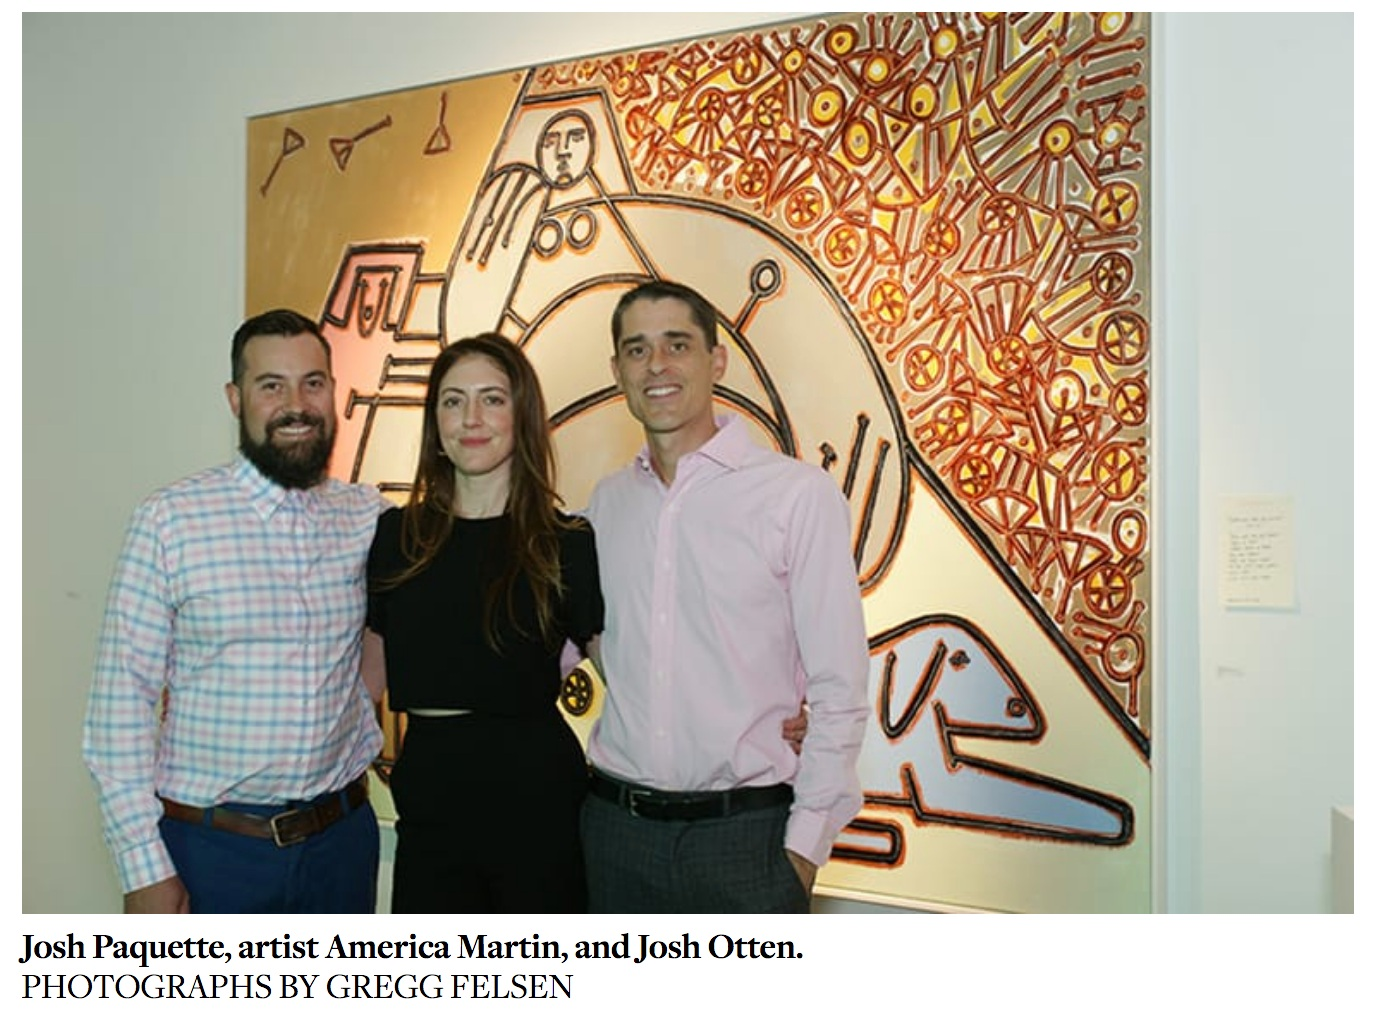 Artist America Martin with Josh Paquette and Josh Otten, owners of   J  .   Willott Gallery